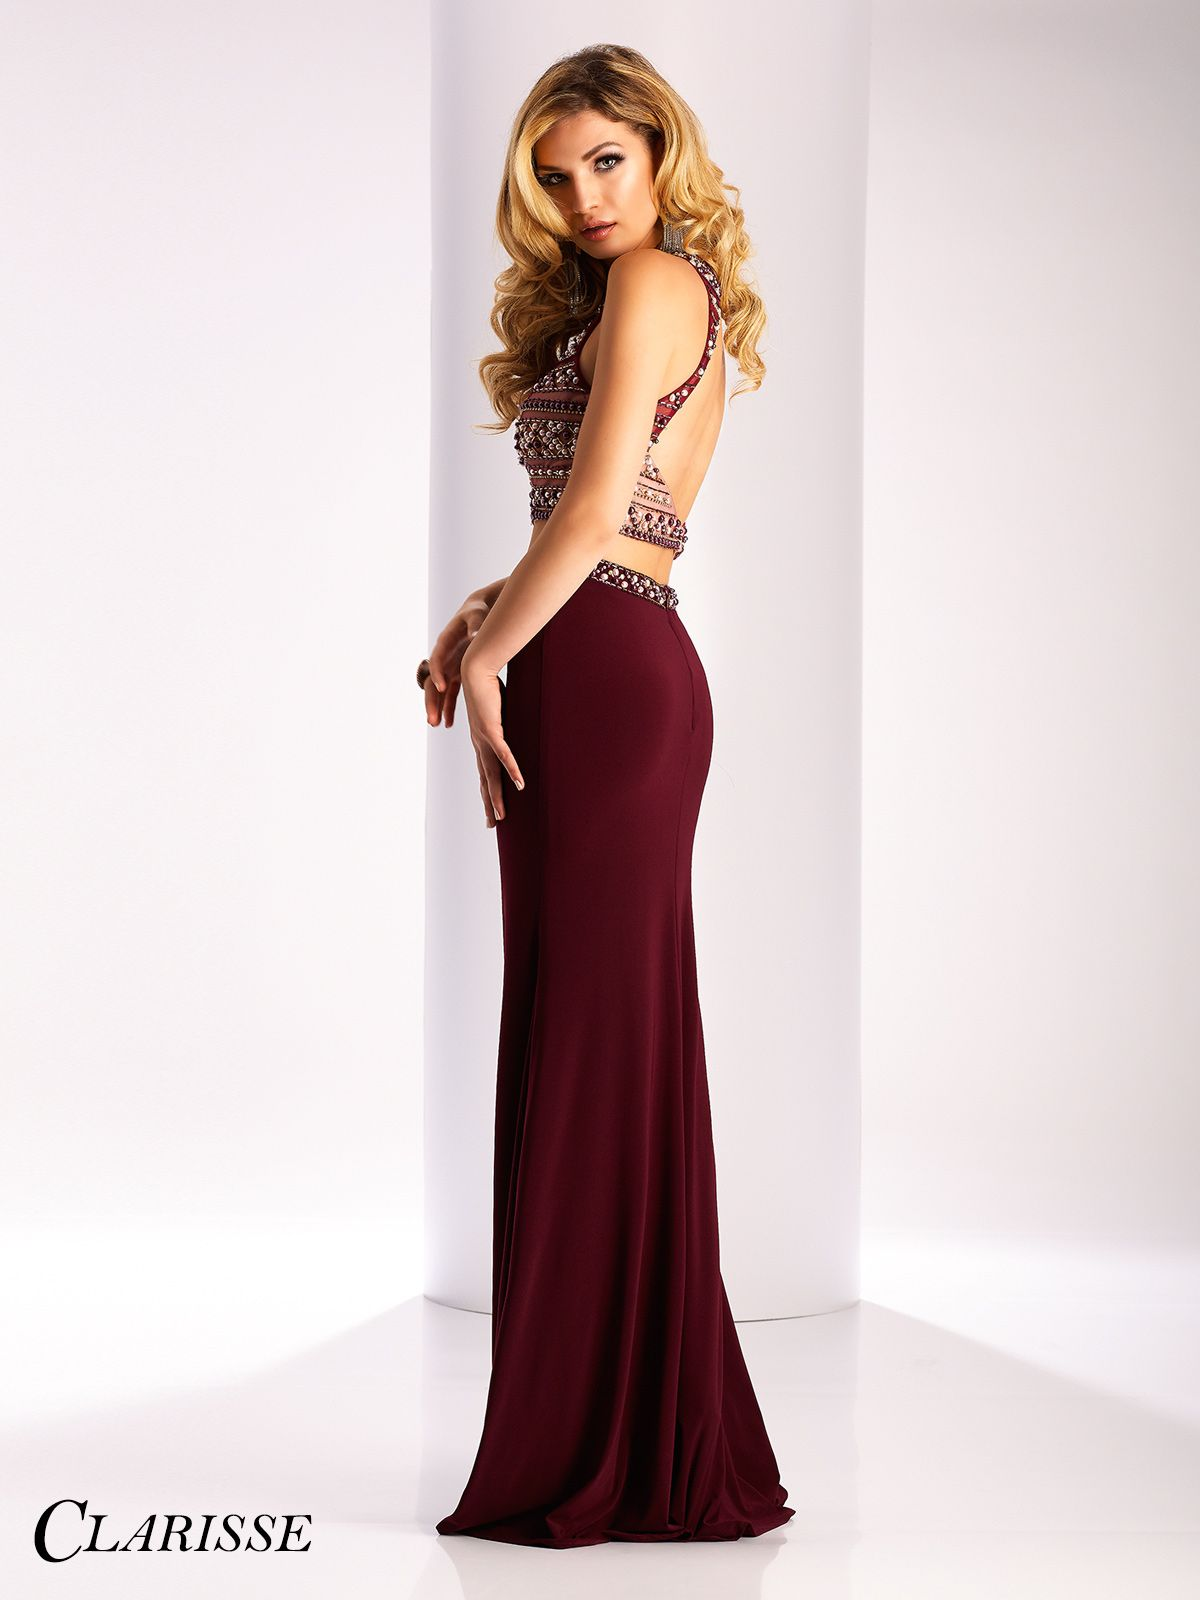 Clarisse 2017 Prom Dress Style 3020 Fitted Two Piece Prom Dress In Burgundy Promgirl Net Prom Dresses Prom Dresses 2017 Maroon Prom Dress